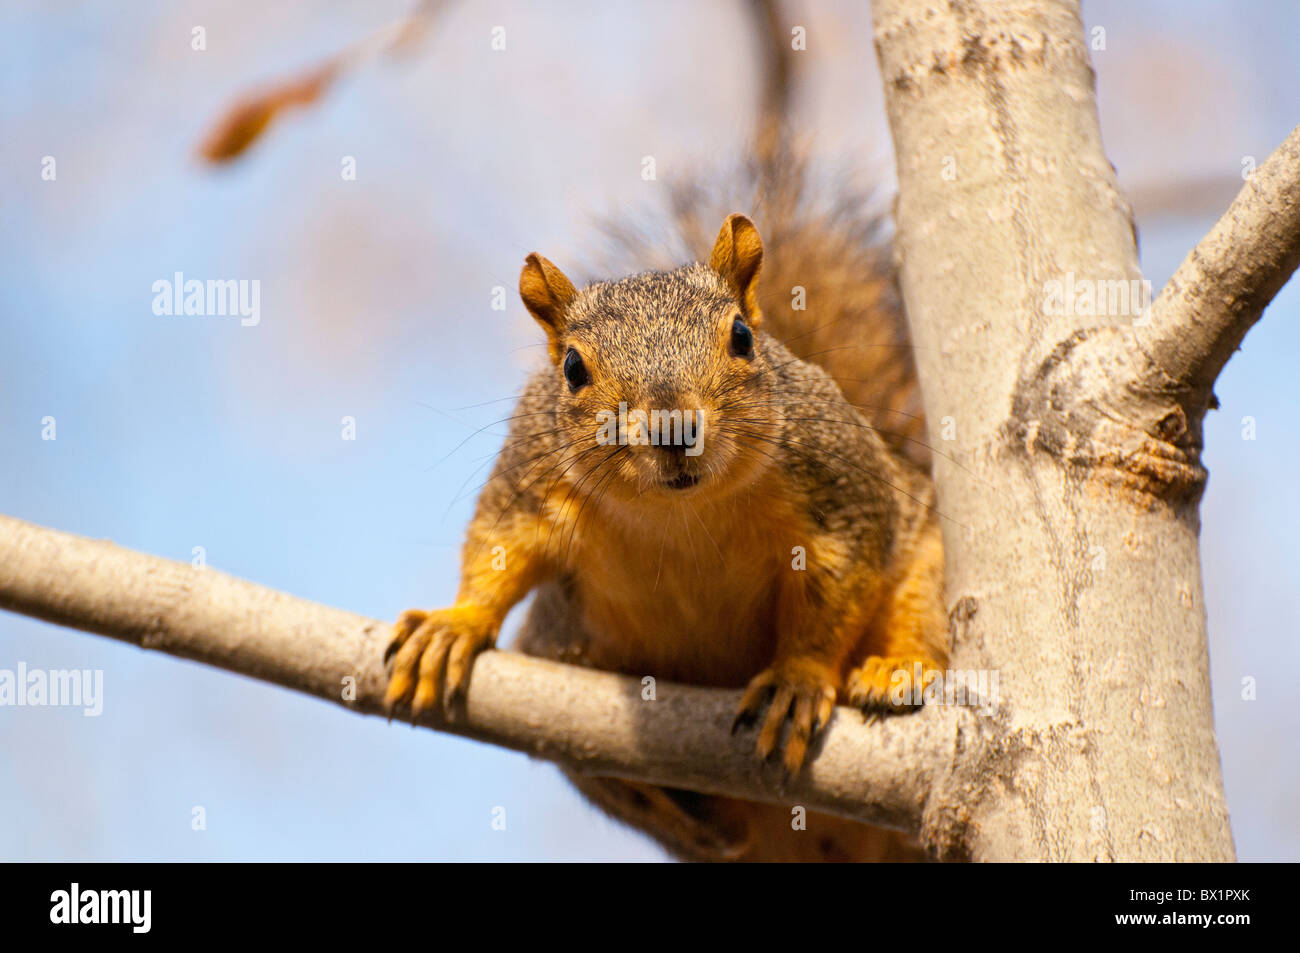 USA, Boise, Idaho, Wildlife, Brown Squirrel in tree on the boise river Greenbelt. - Stock Image